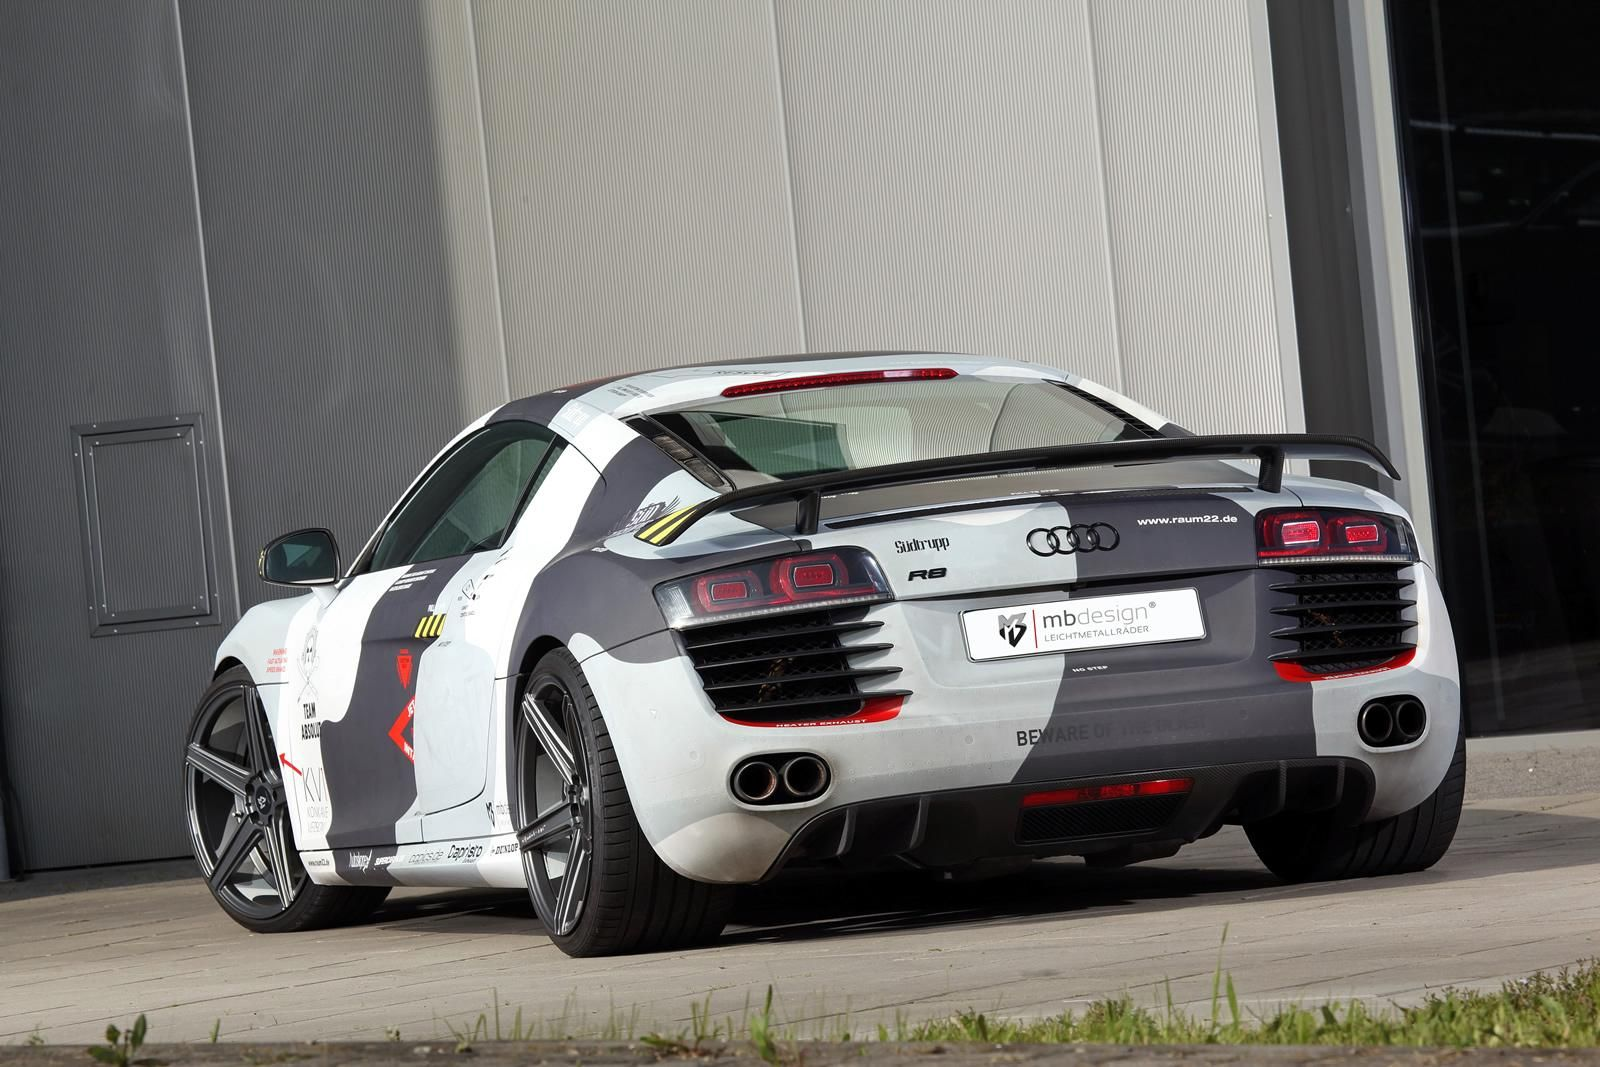 Audi R8 Hidden In Plain Sight